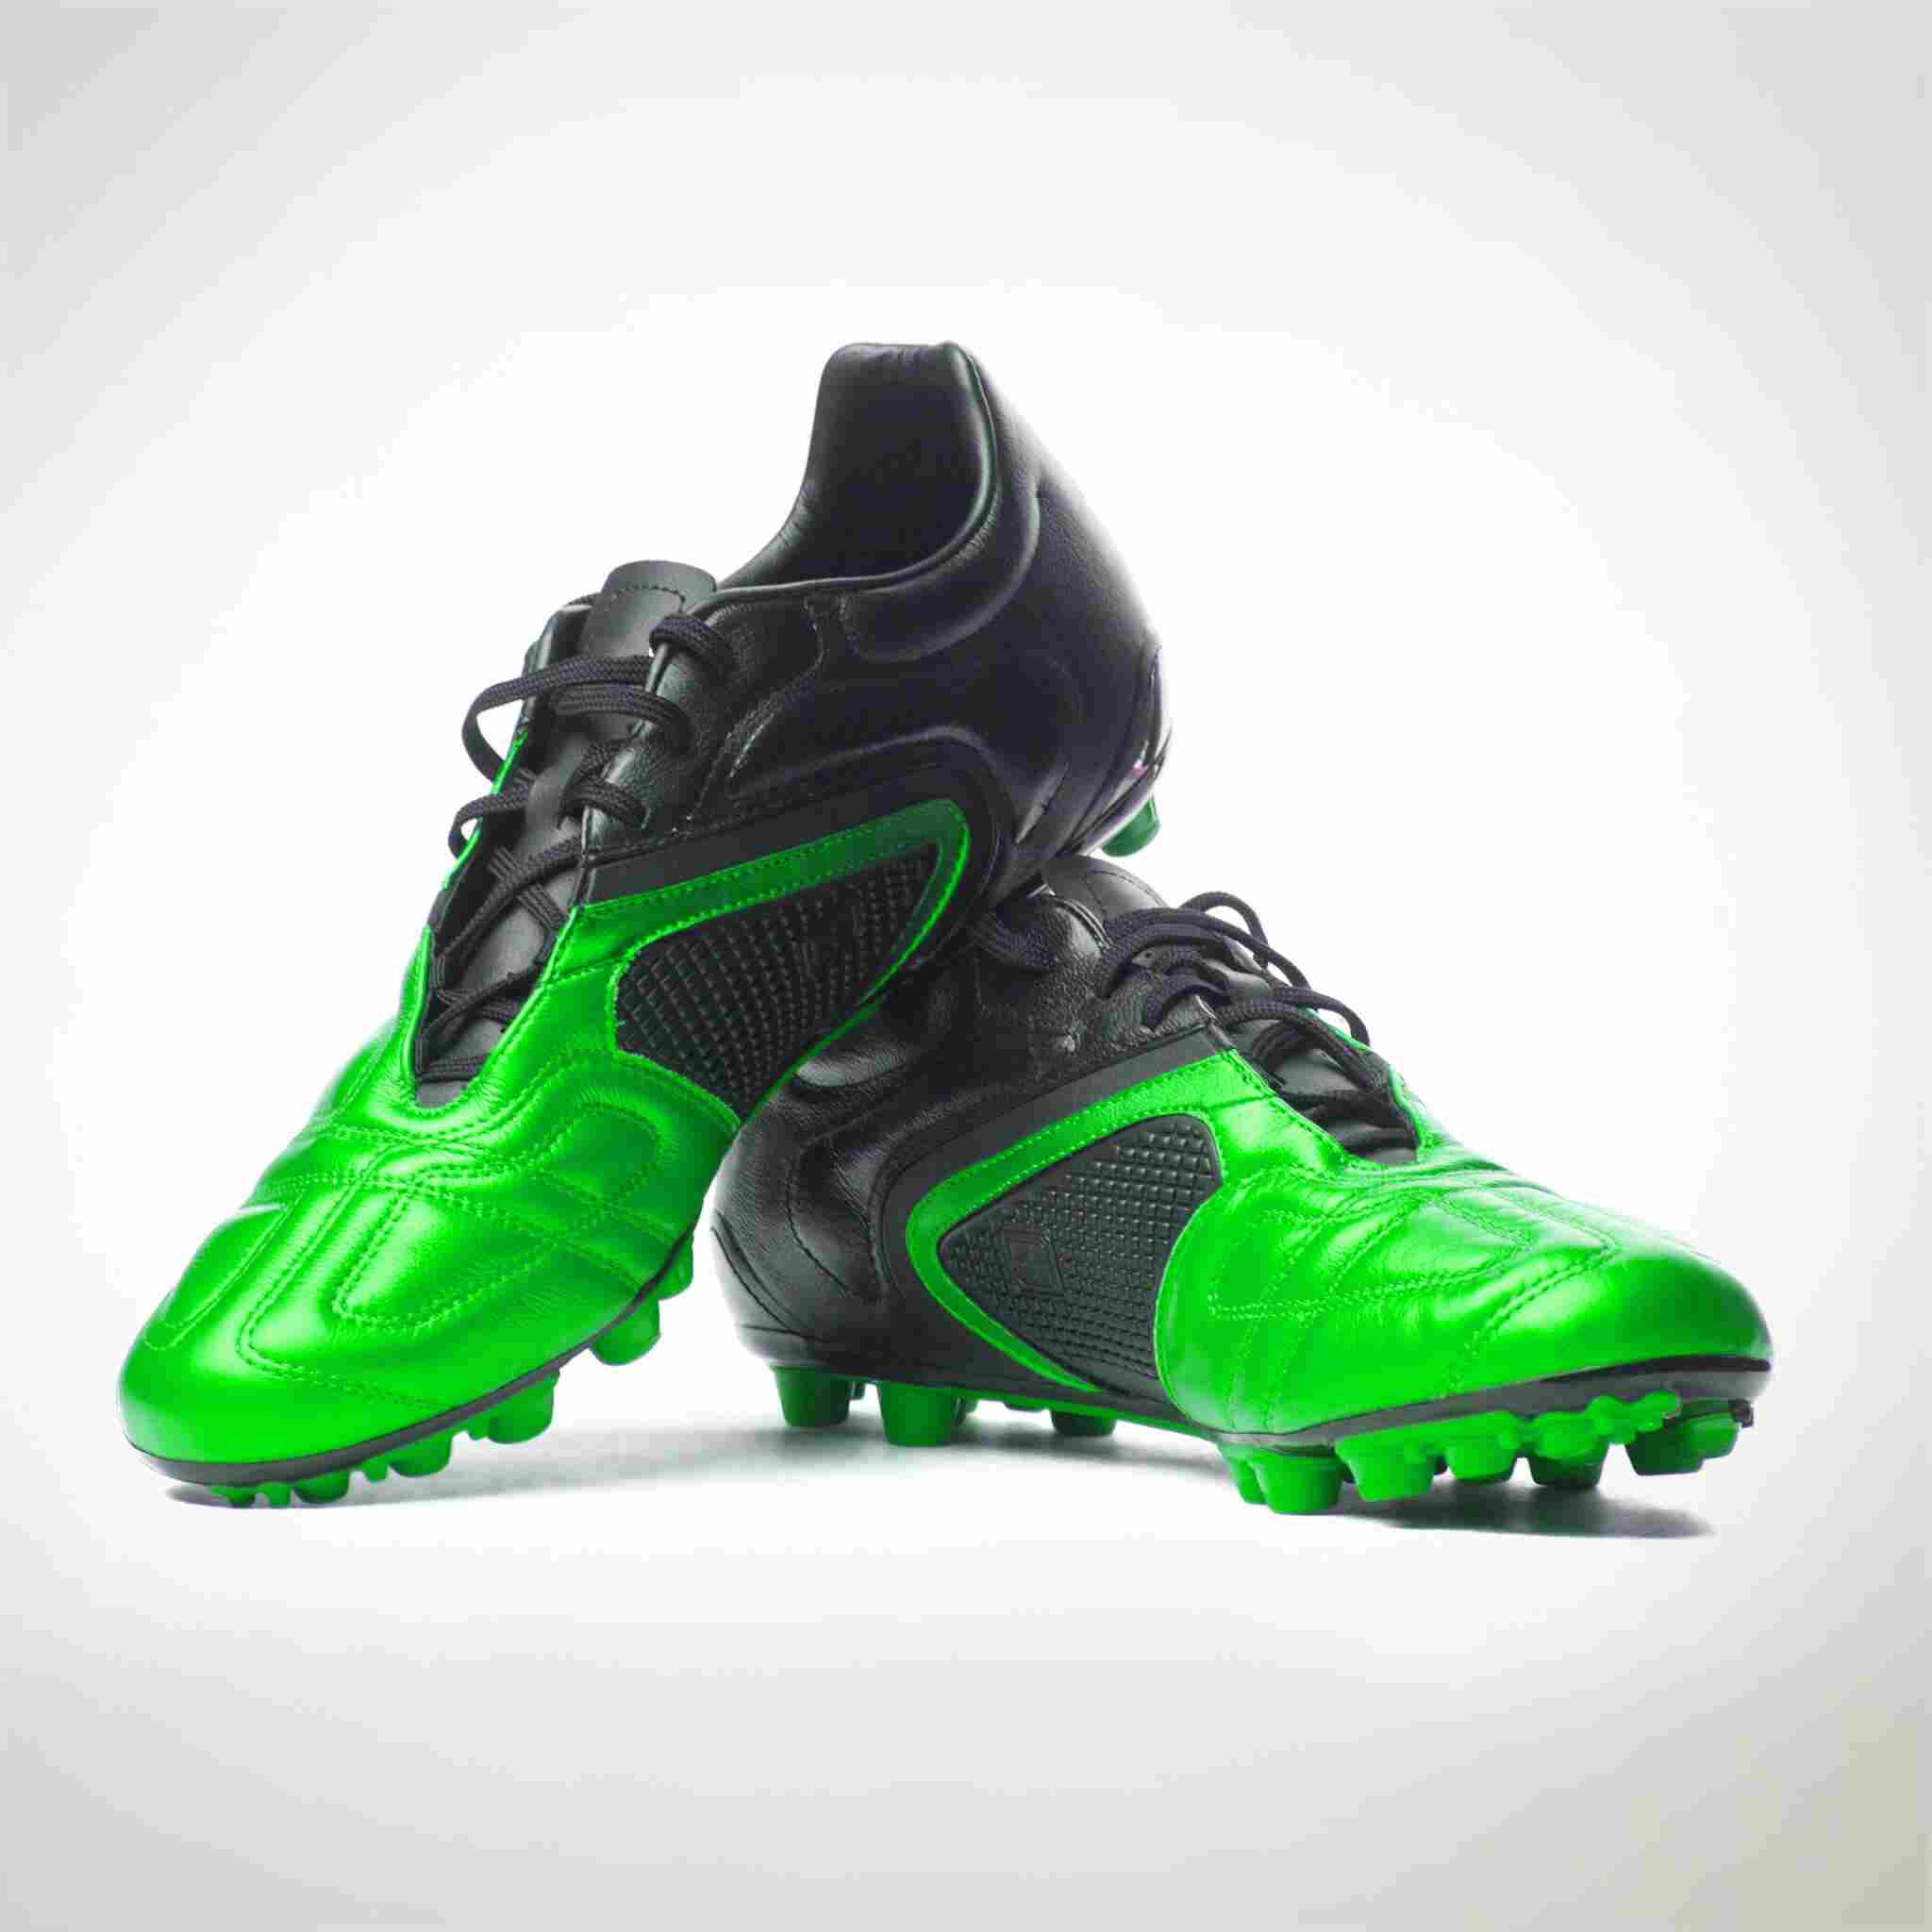 883c19adc Green soccer shoes – Boys   Girls Clubs of Dorchester